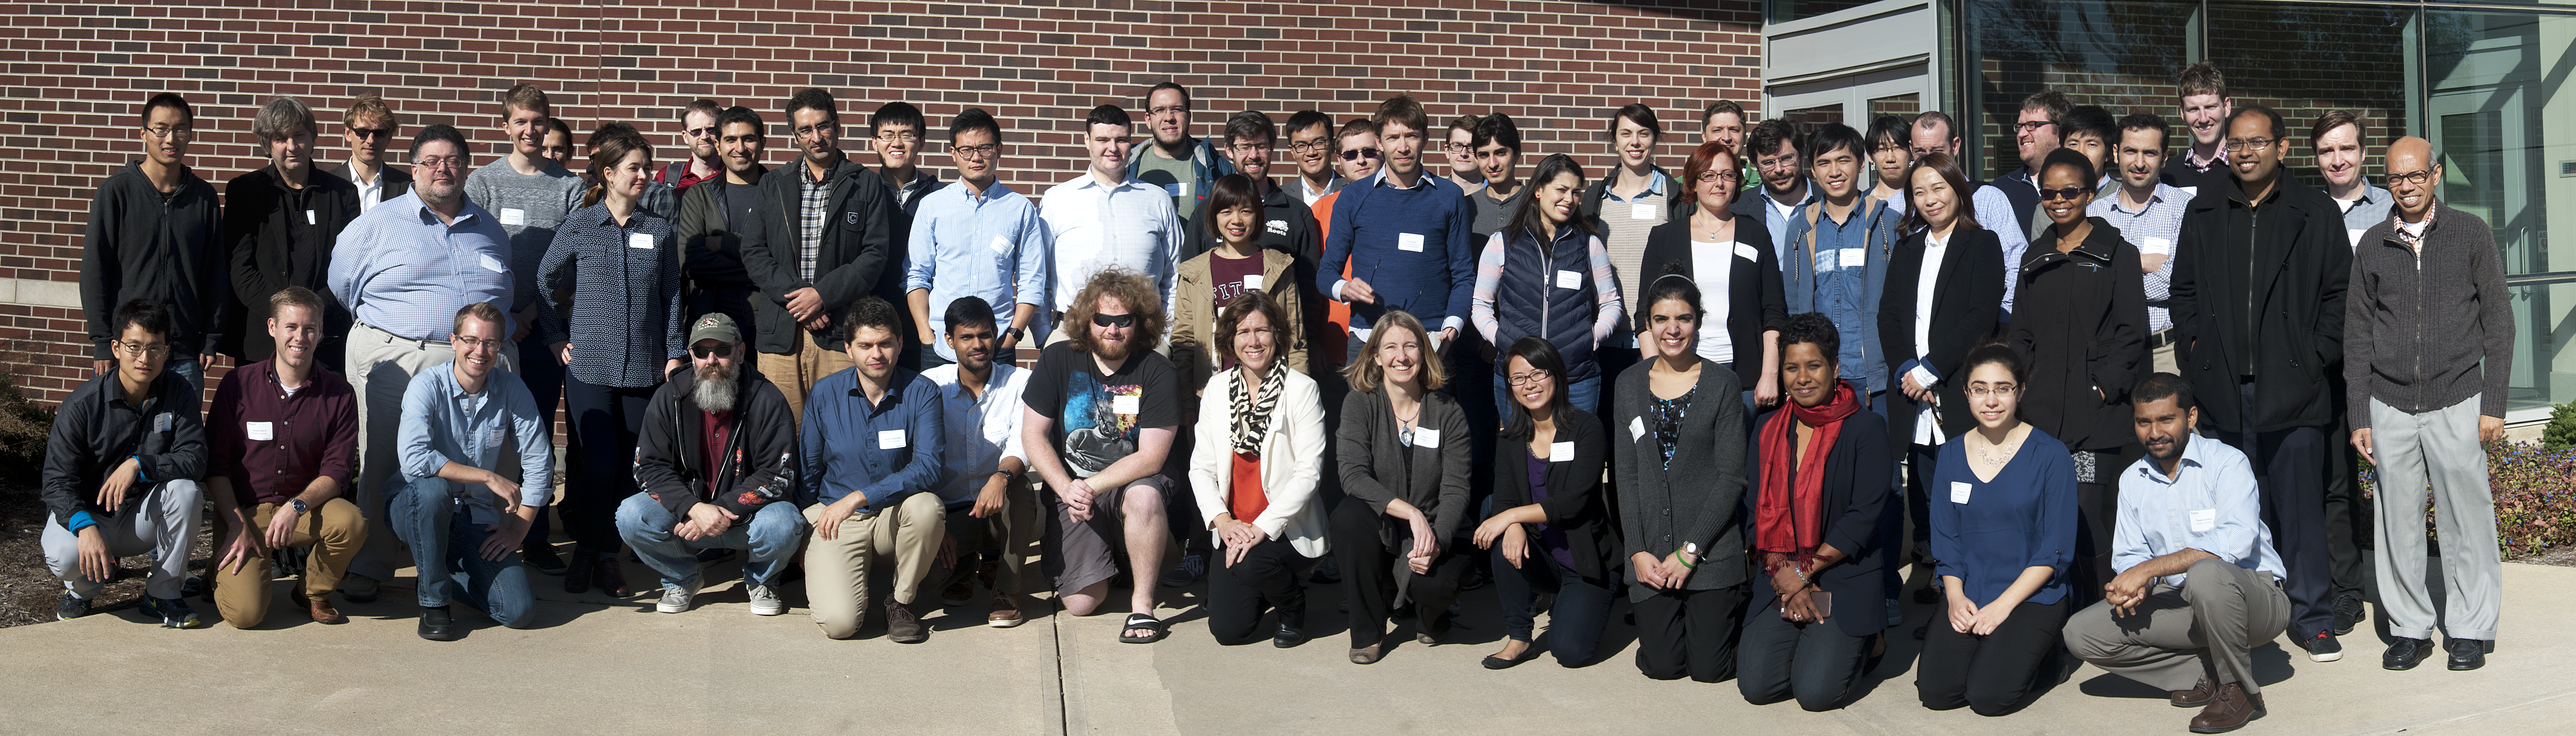 MidQBio 2016 Attendees